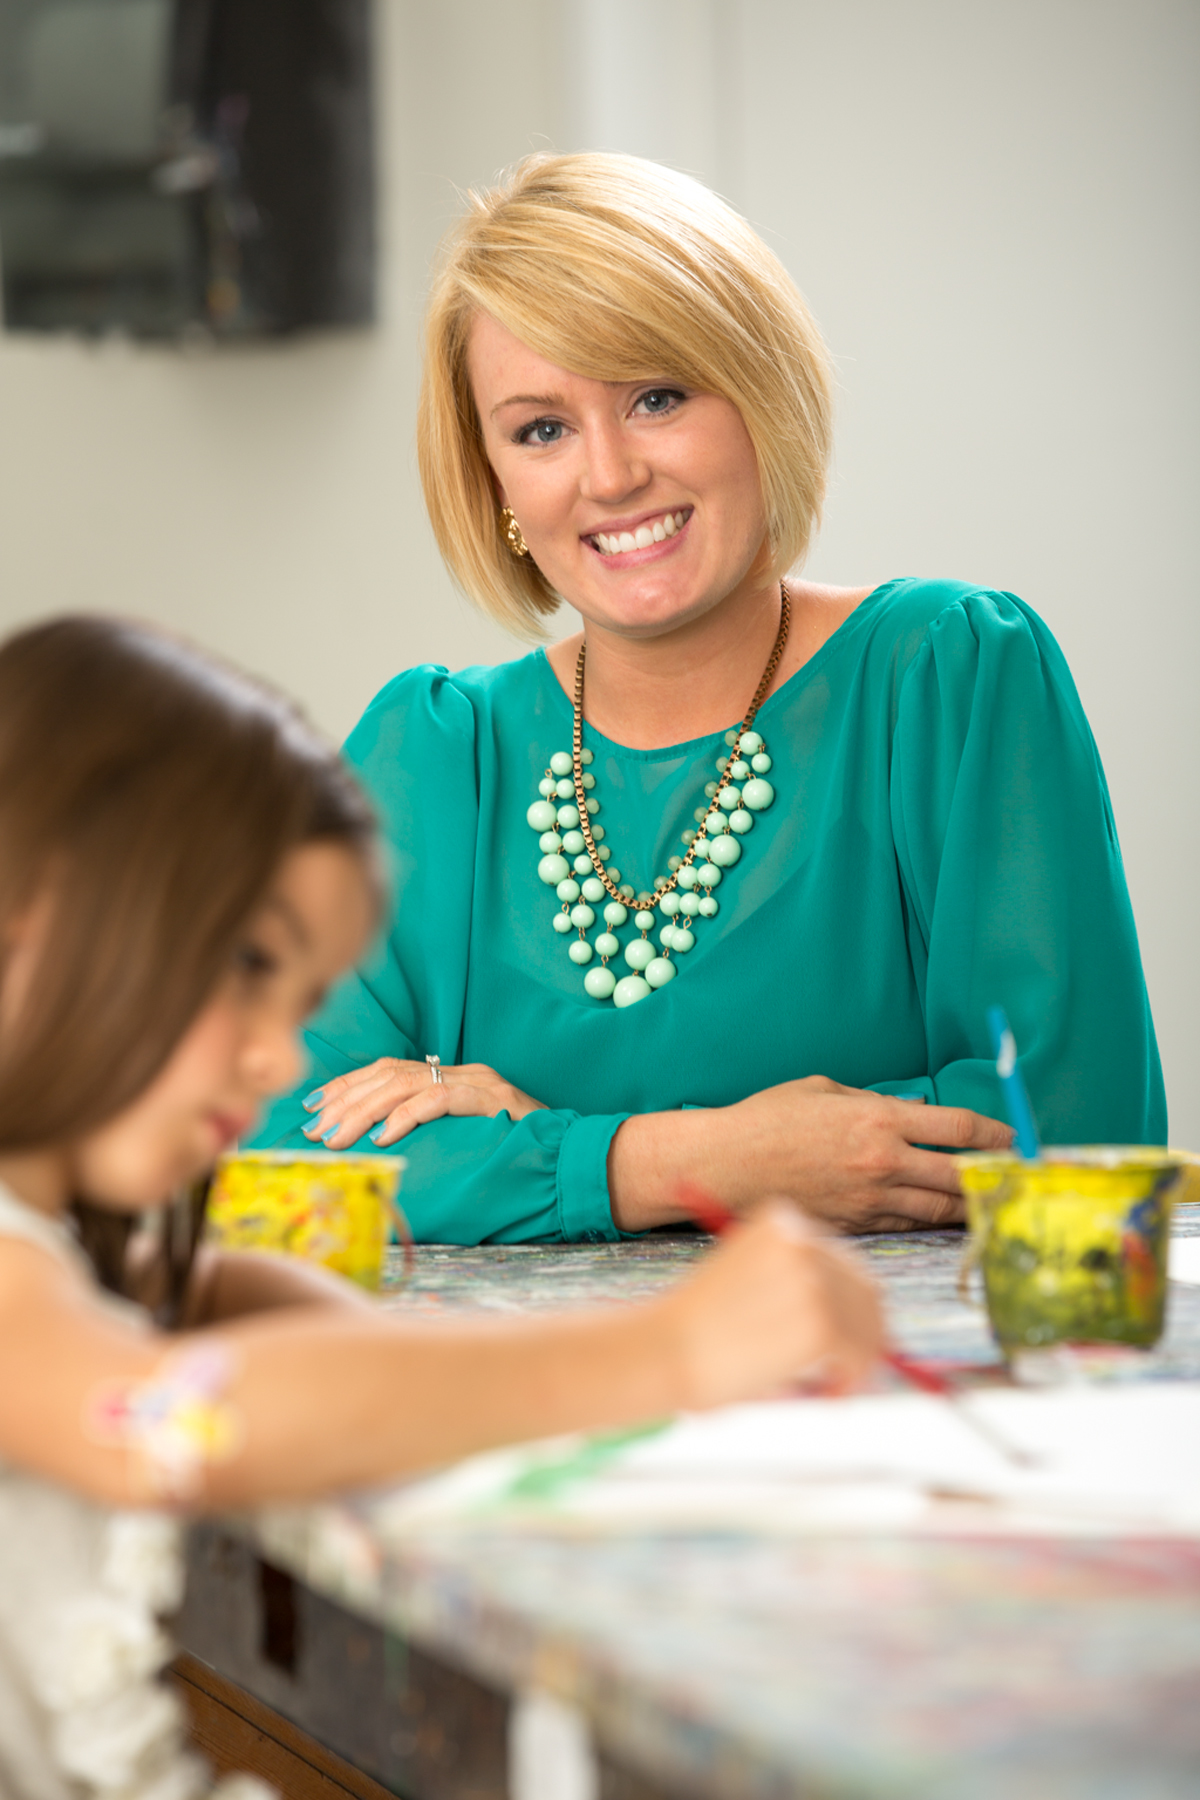 A blonde woman in an aqua-green shirt and statement necklaces smiles at a table while a child paints nearby